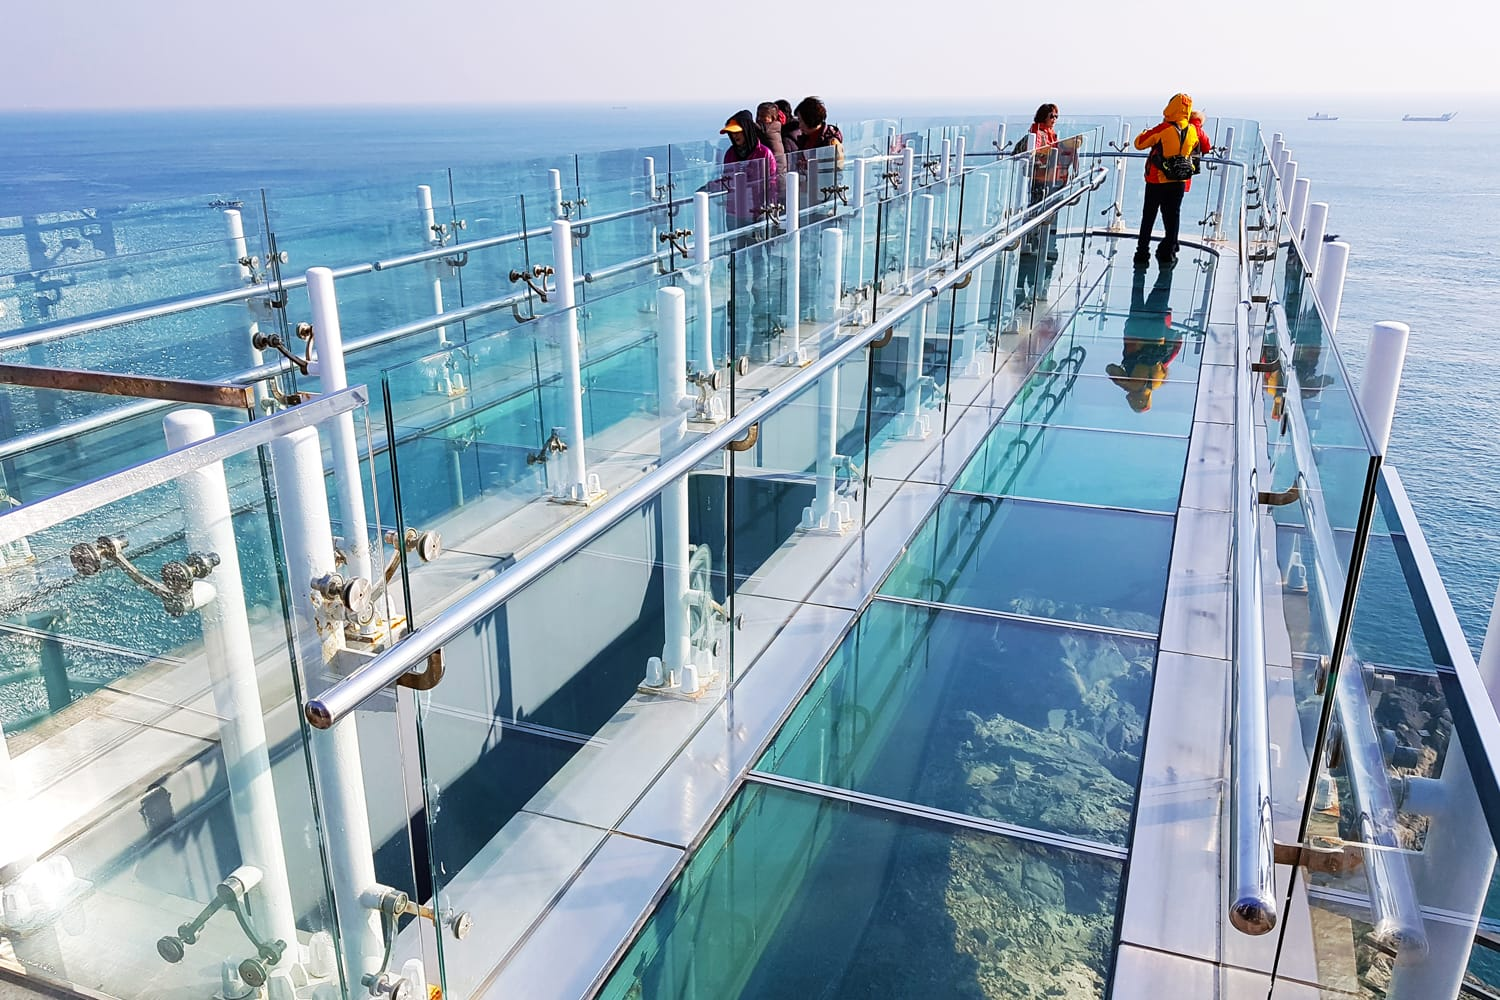 Many tourists standing at Oryukdo Skywalk, the glass bridge seascape viewer, one of famous landmark on the peak of rock mountain in Oryukdo City, South Korea